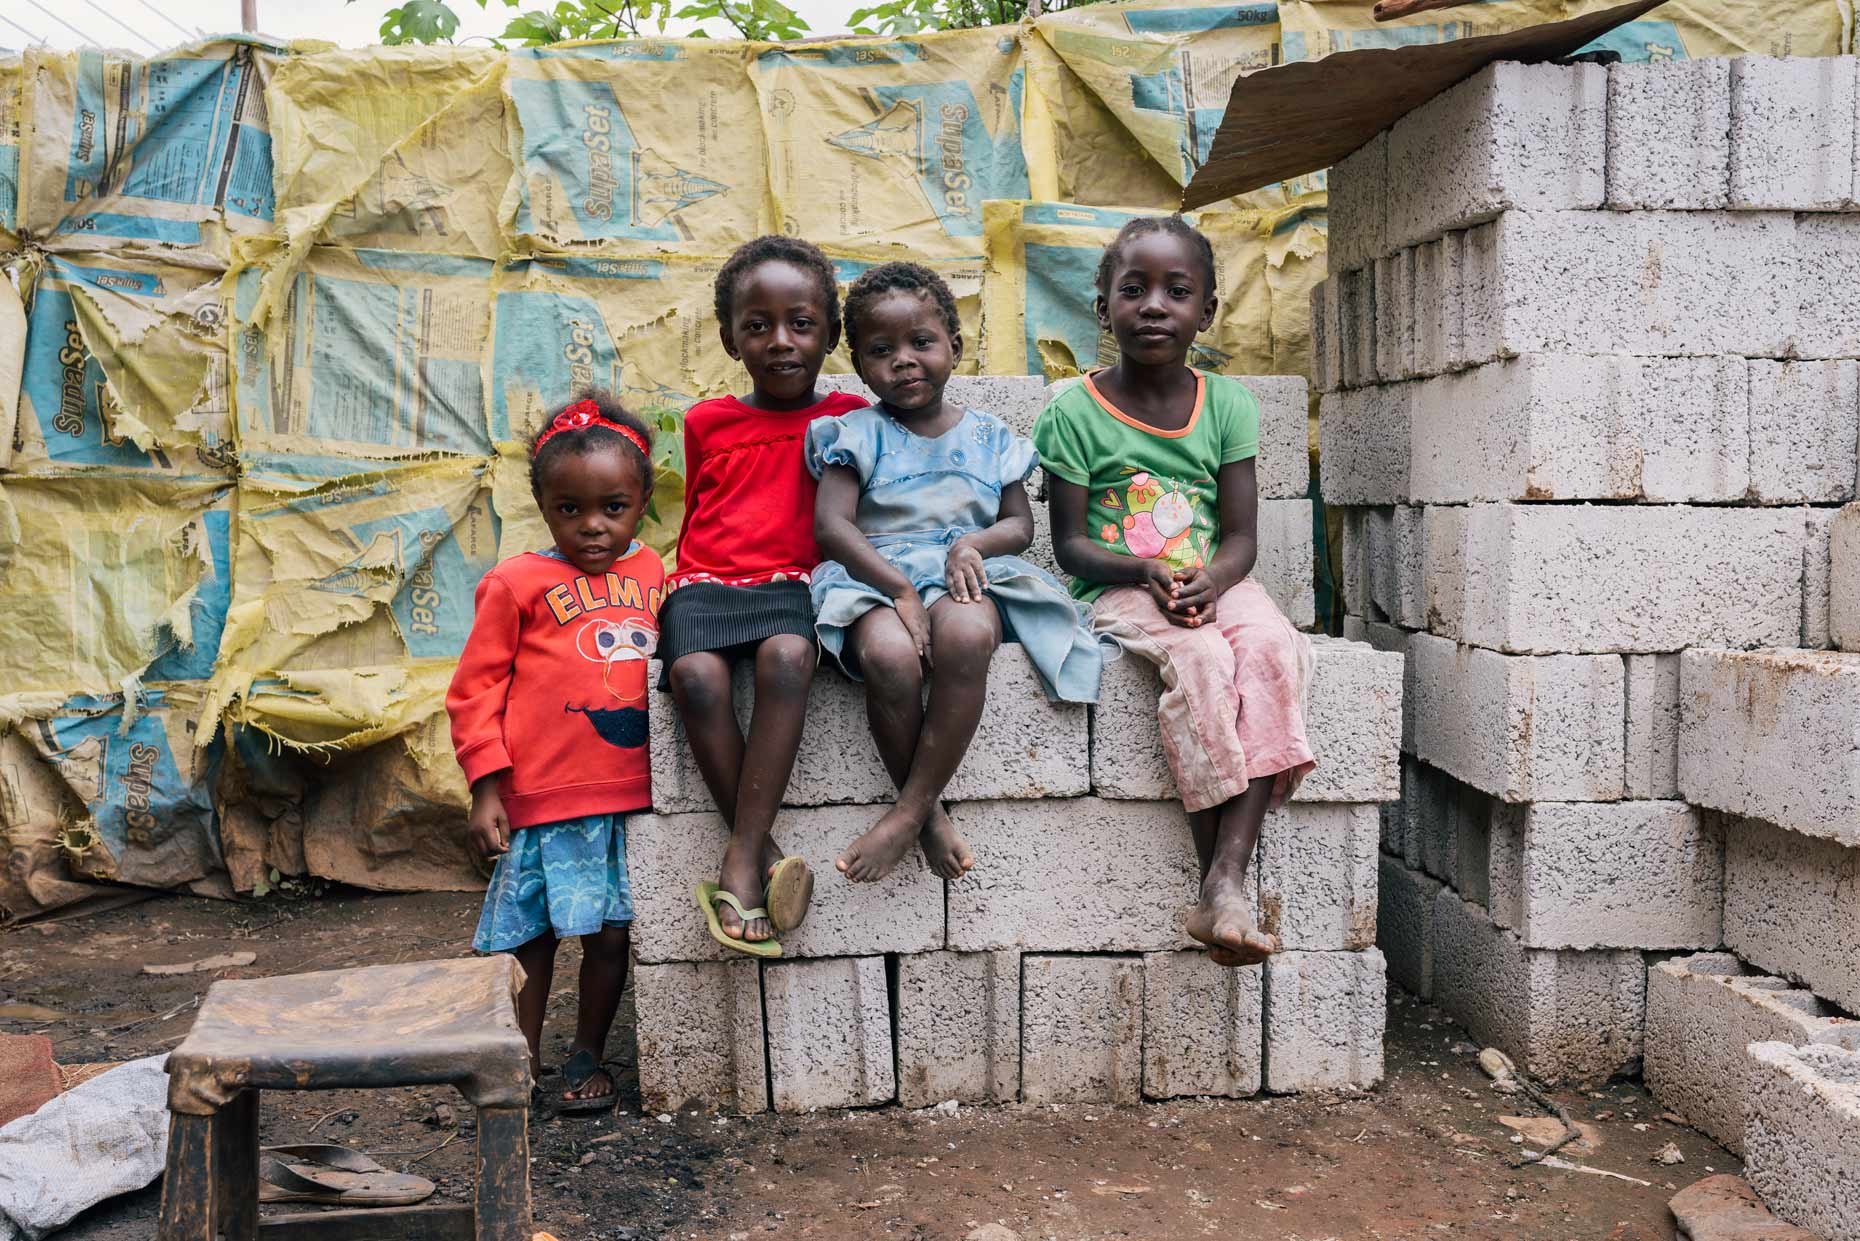 Environmental-portrait-of-four-girls-sitting-on-bricks-in-Africa-YES